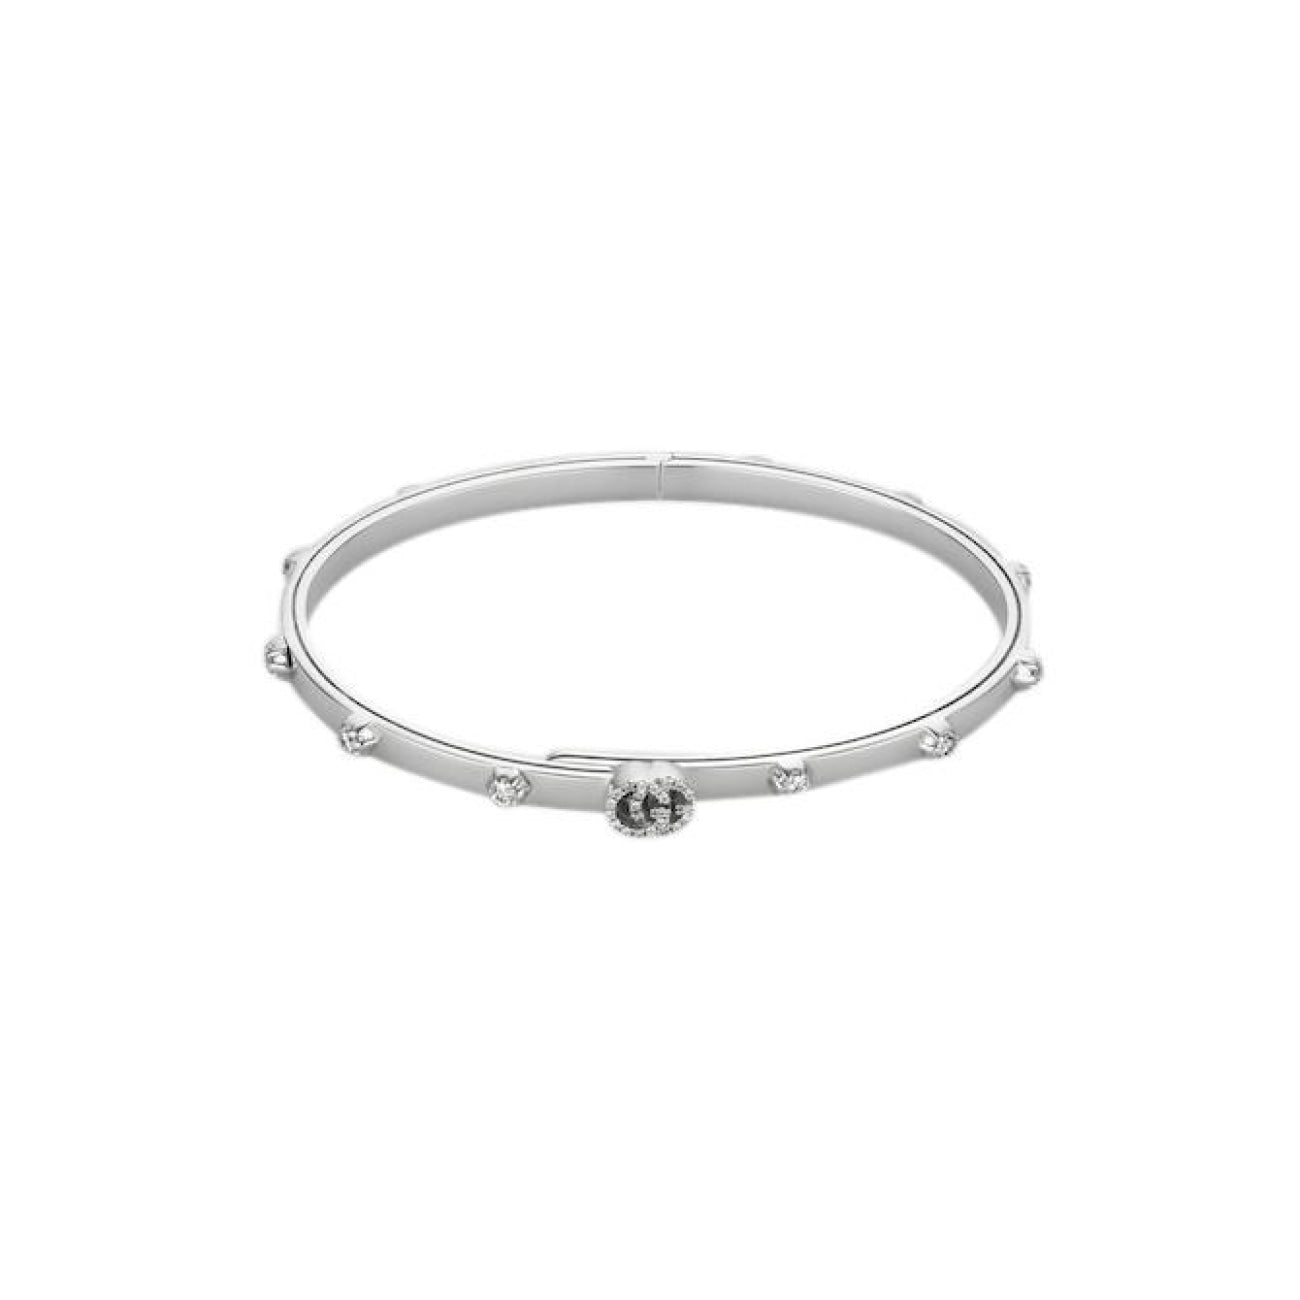 Gucci Jewelry - Running G Bracelet Xs | Manfredi Jewels